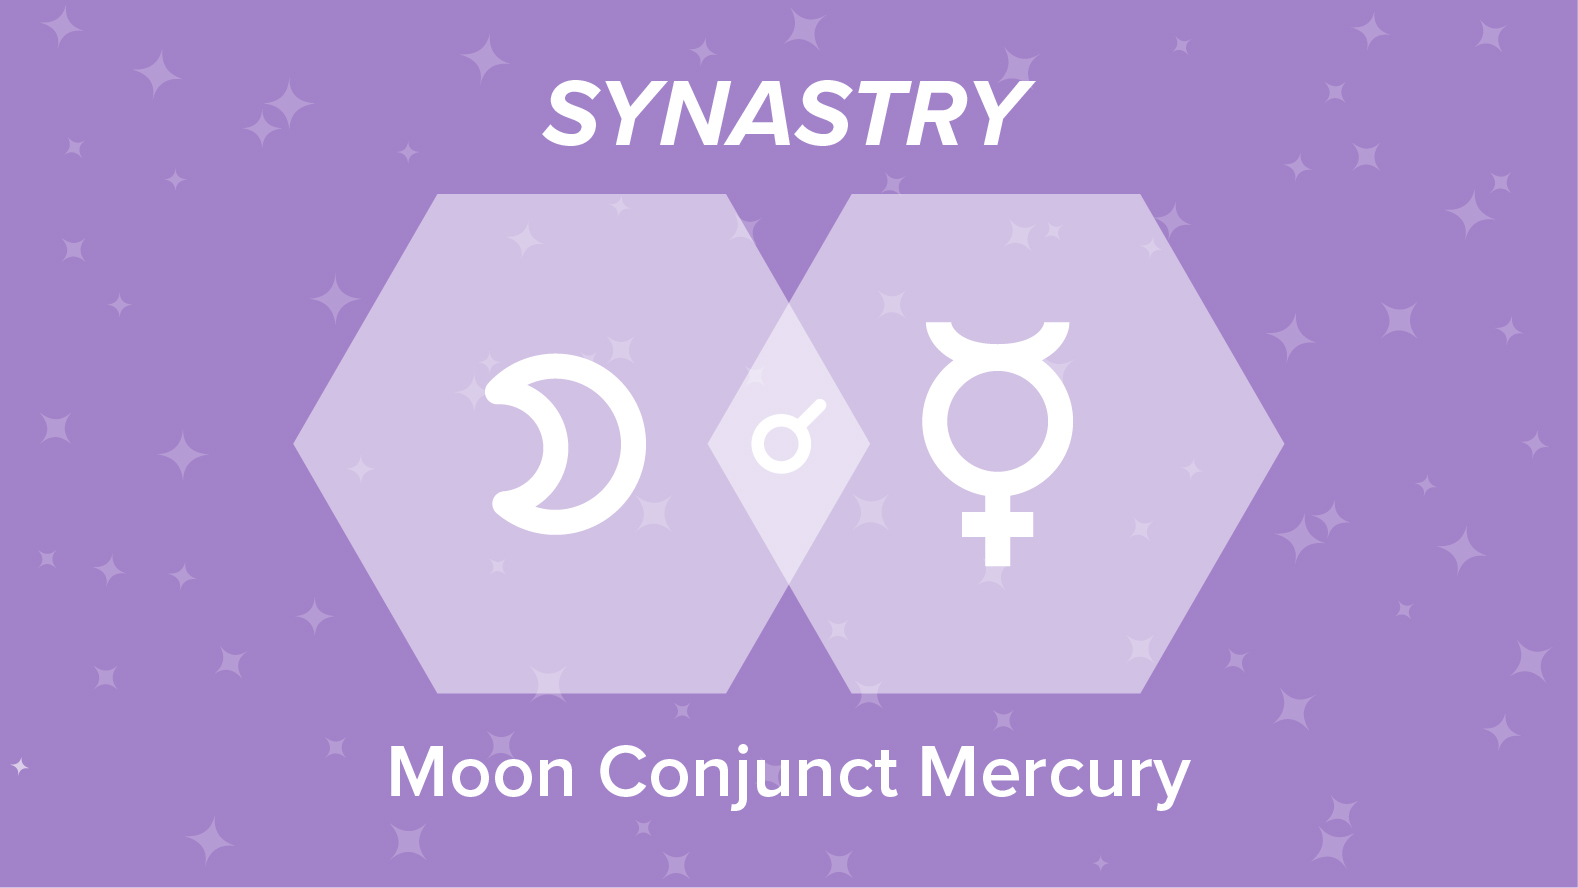 Moon Conjunct Mercury Synastry: Relationships and Friendships Explained